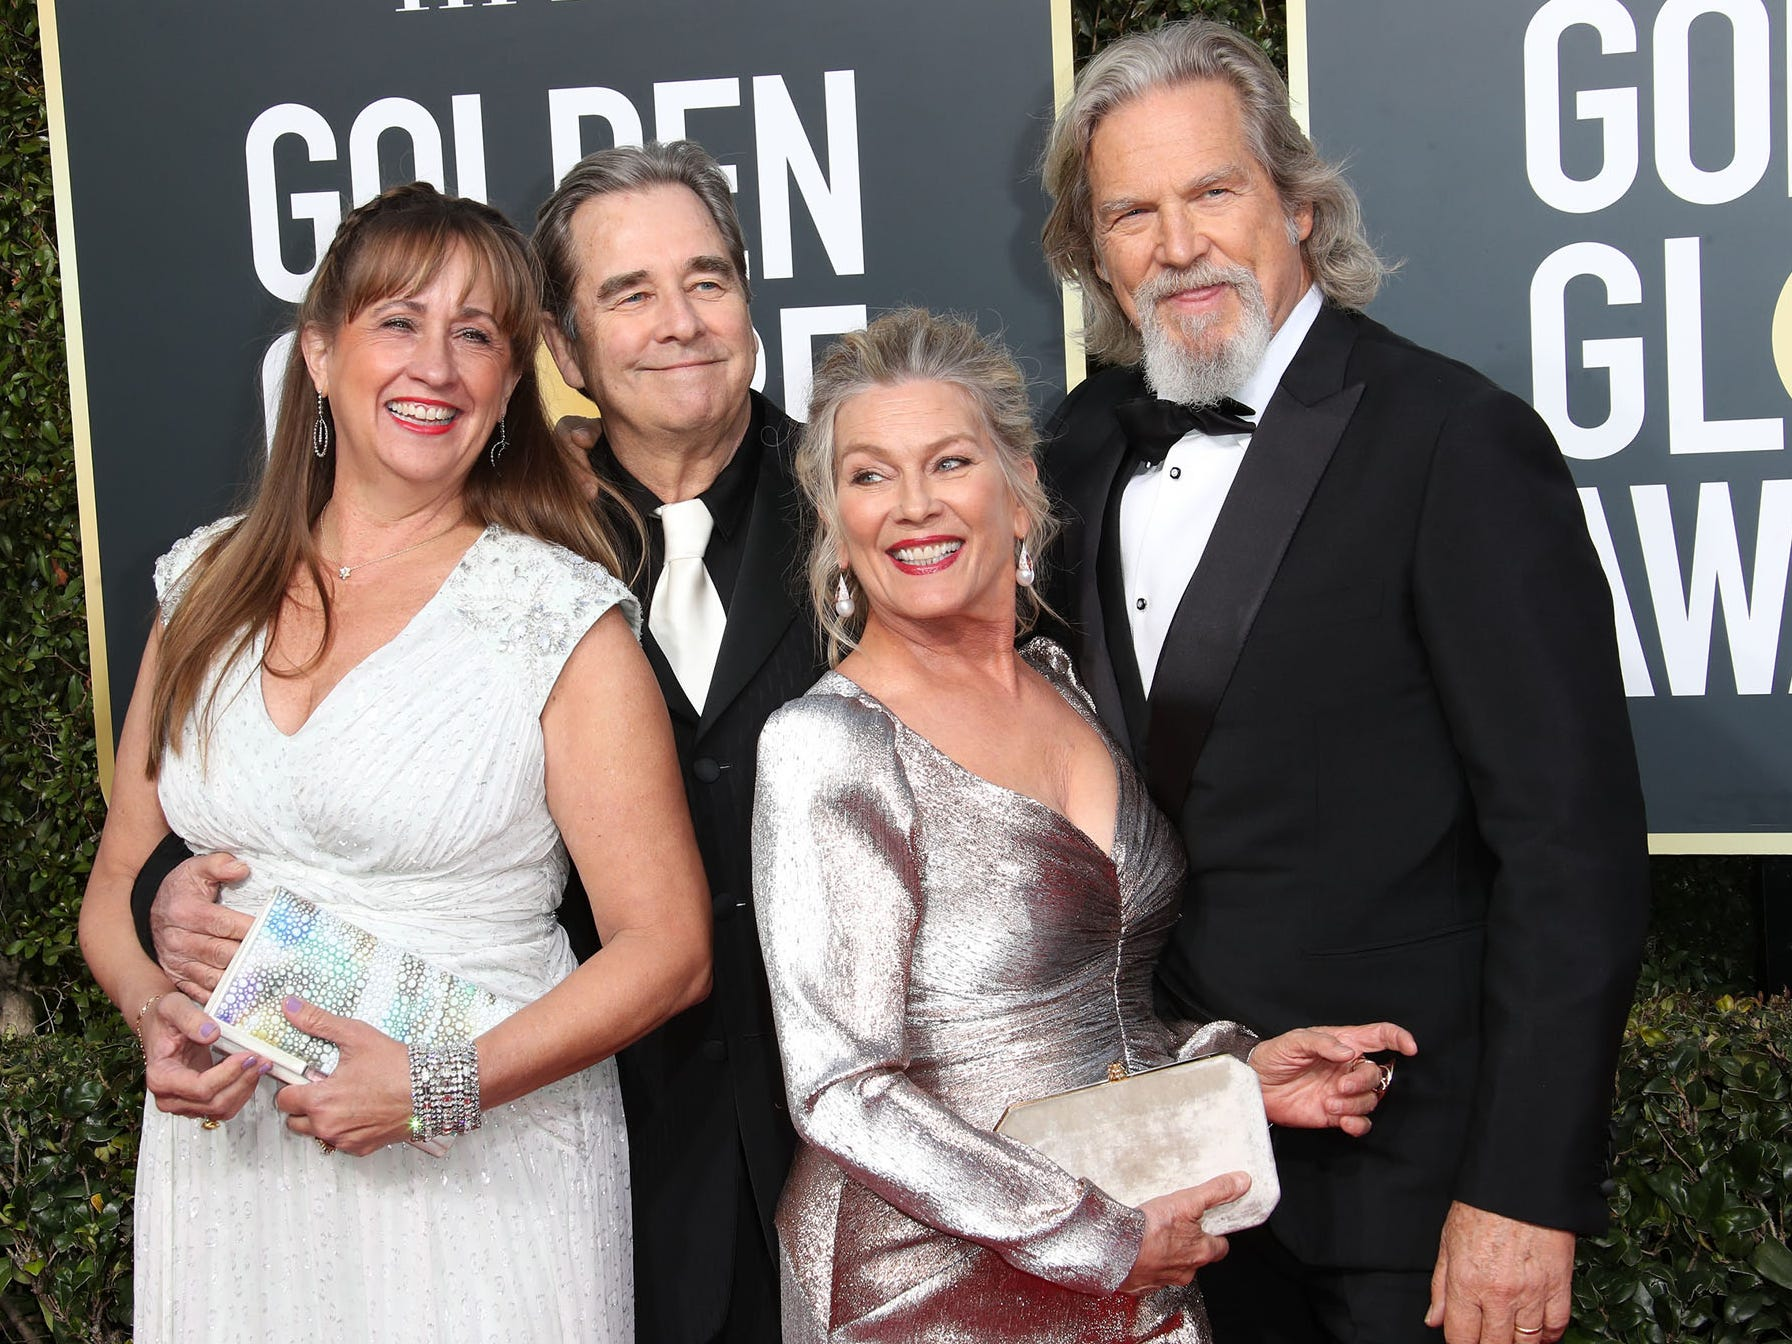 Wendy Treece Bridges, left, Beau Bridges, Susan Geston and Jeff Bridges